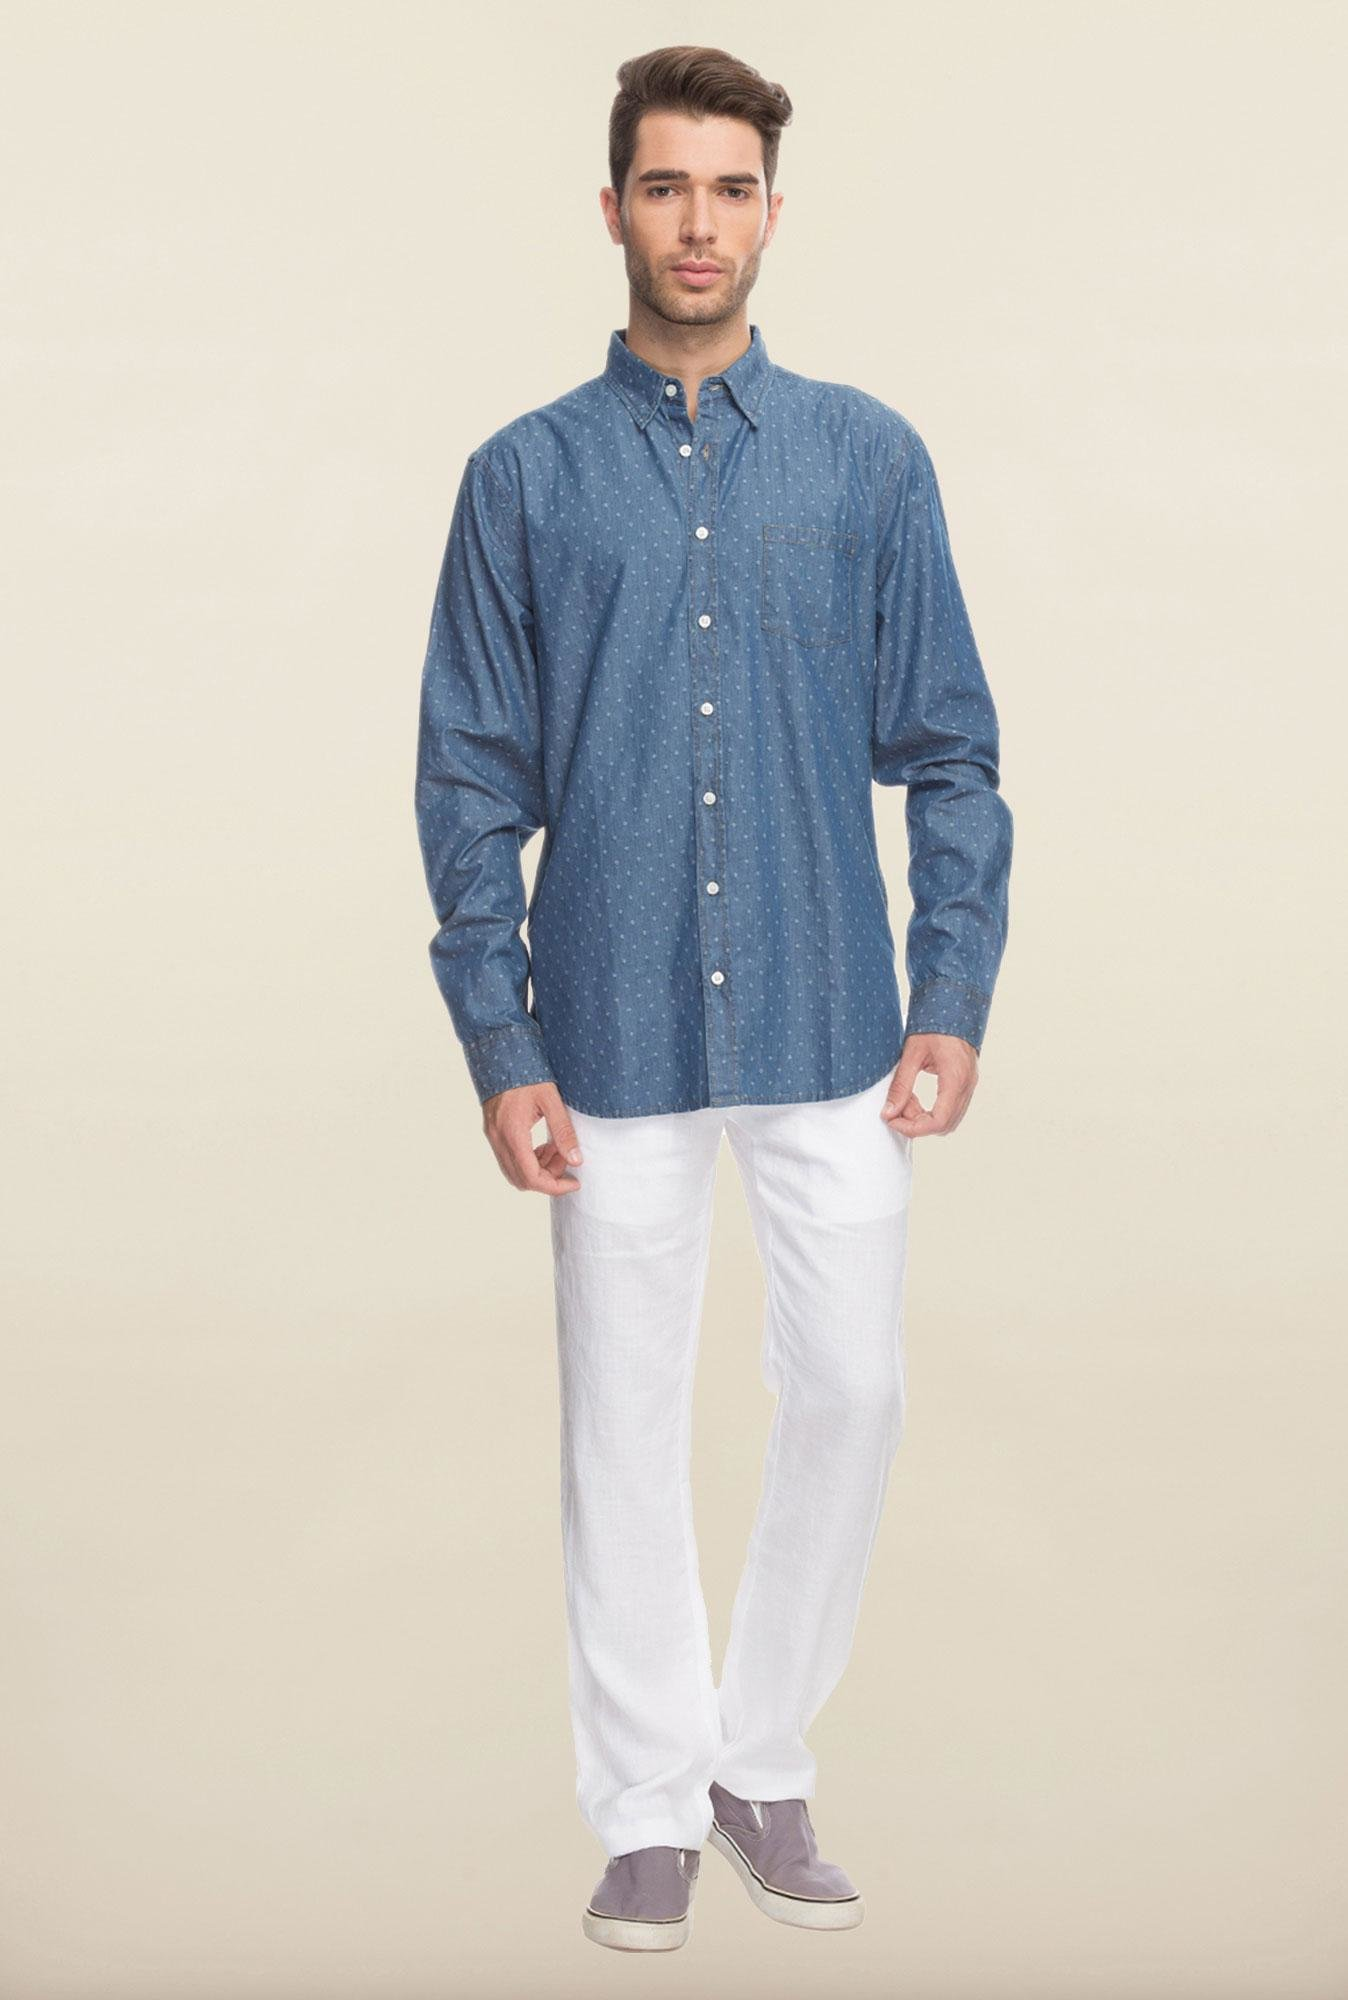 Cottonworld Blue Printed Denim Casual Shirt